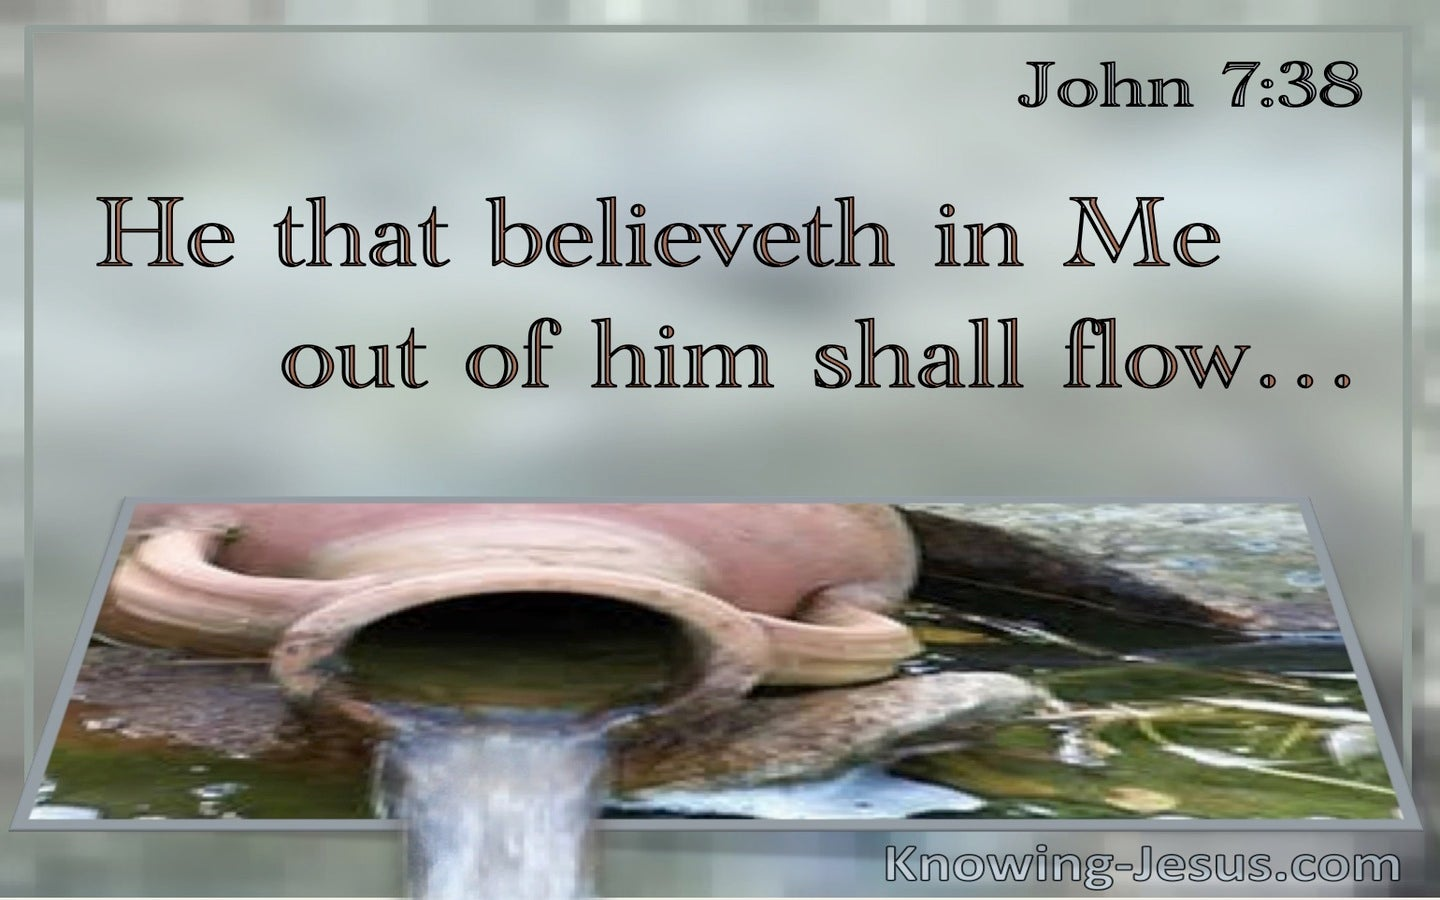 John 7:38 He That Believeth On Me Out Of Him Shall Flow (utmost)09:02